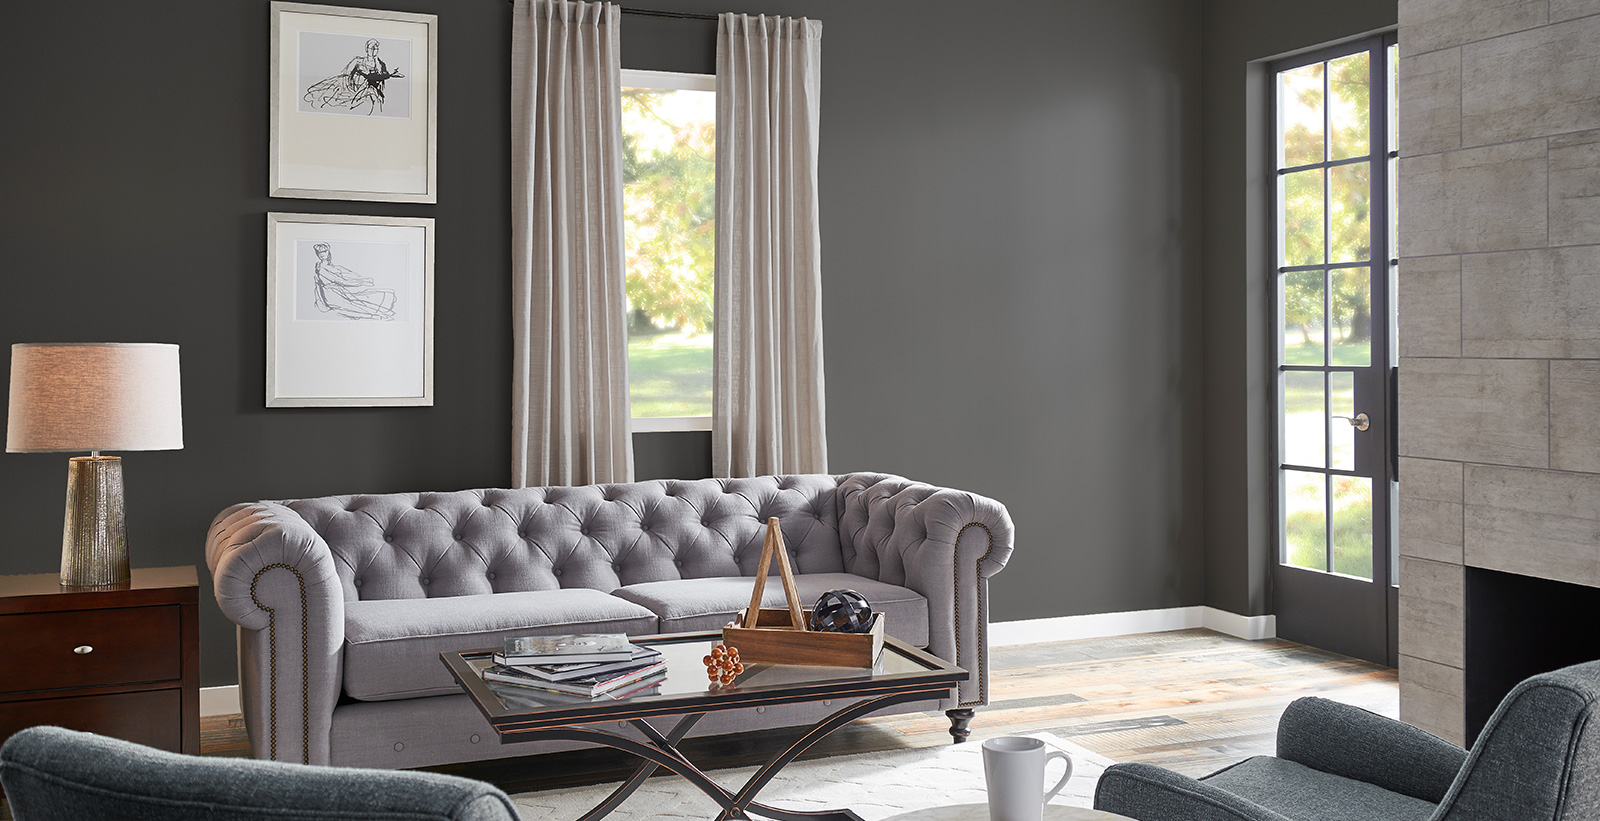 Minimal styled living room with dark gray on walls, white on trim, and light gray tufted couch